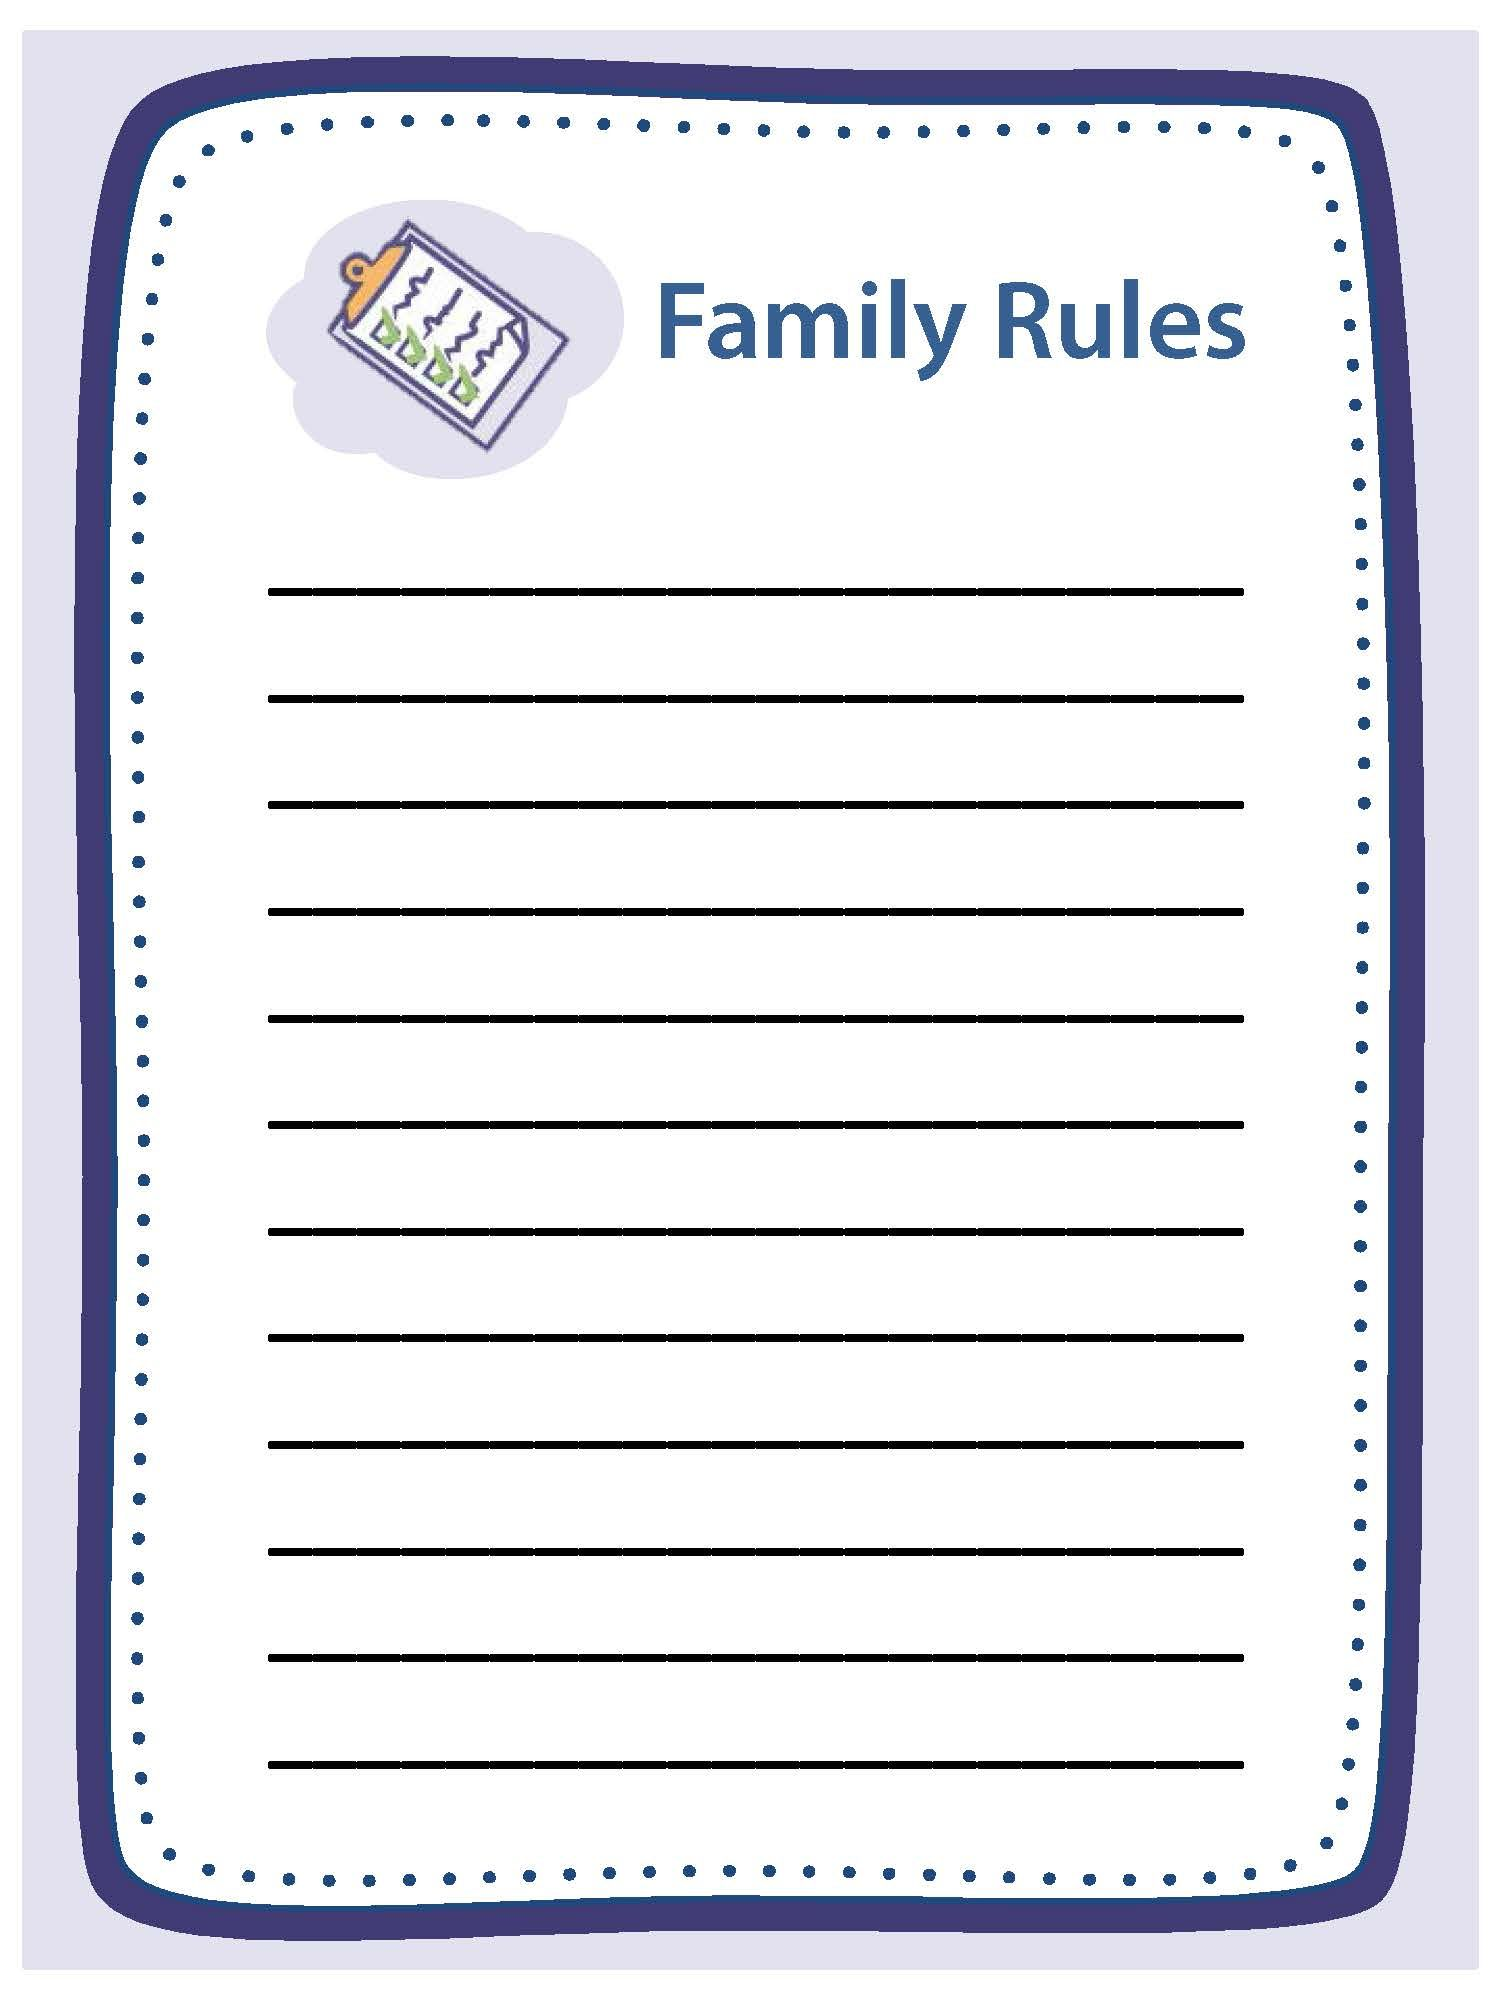 A family rule is a specific, clear statement of what you